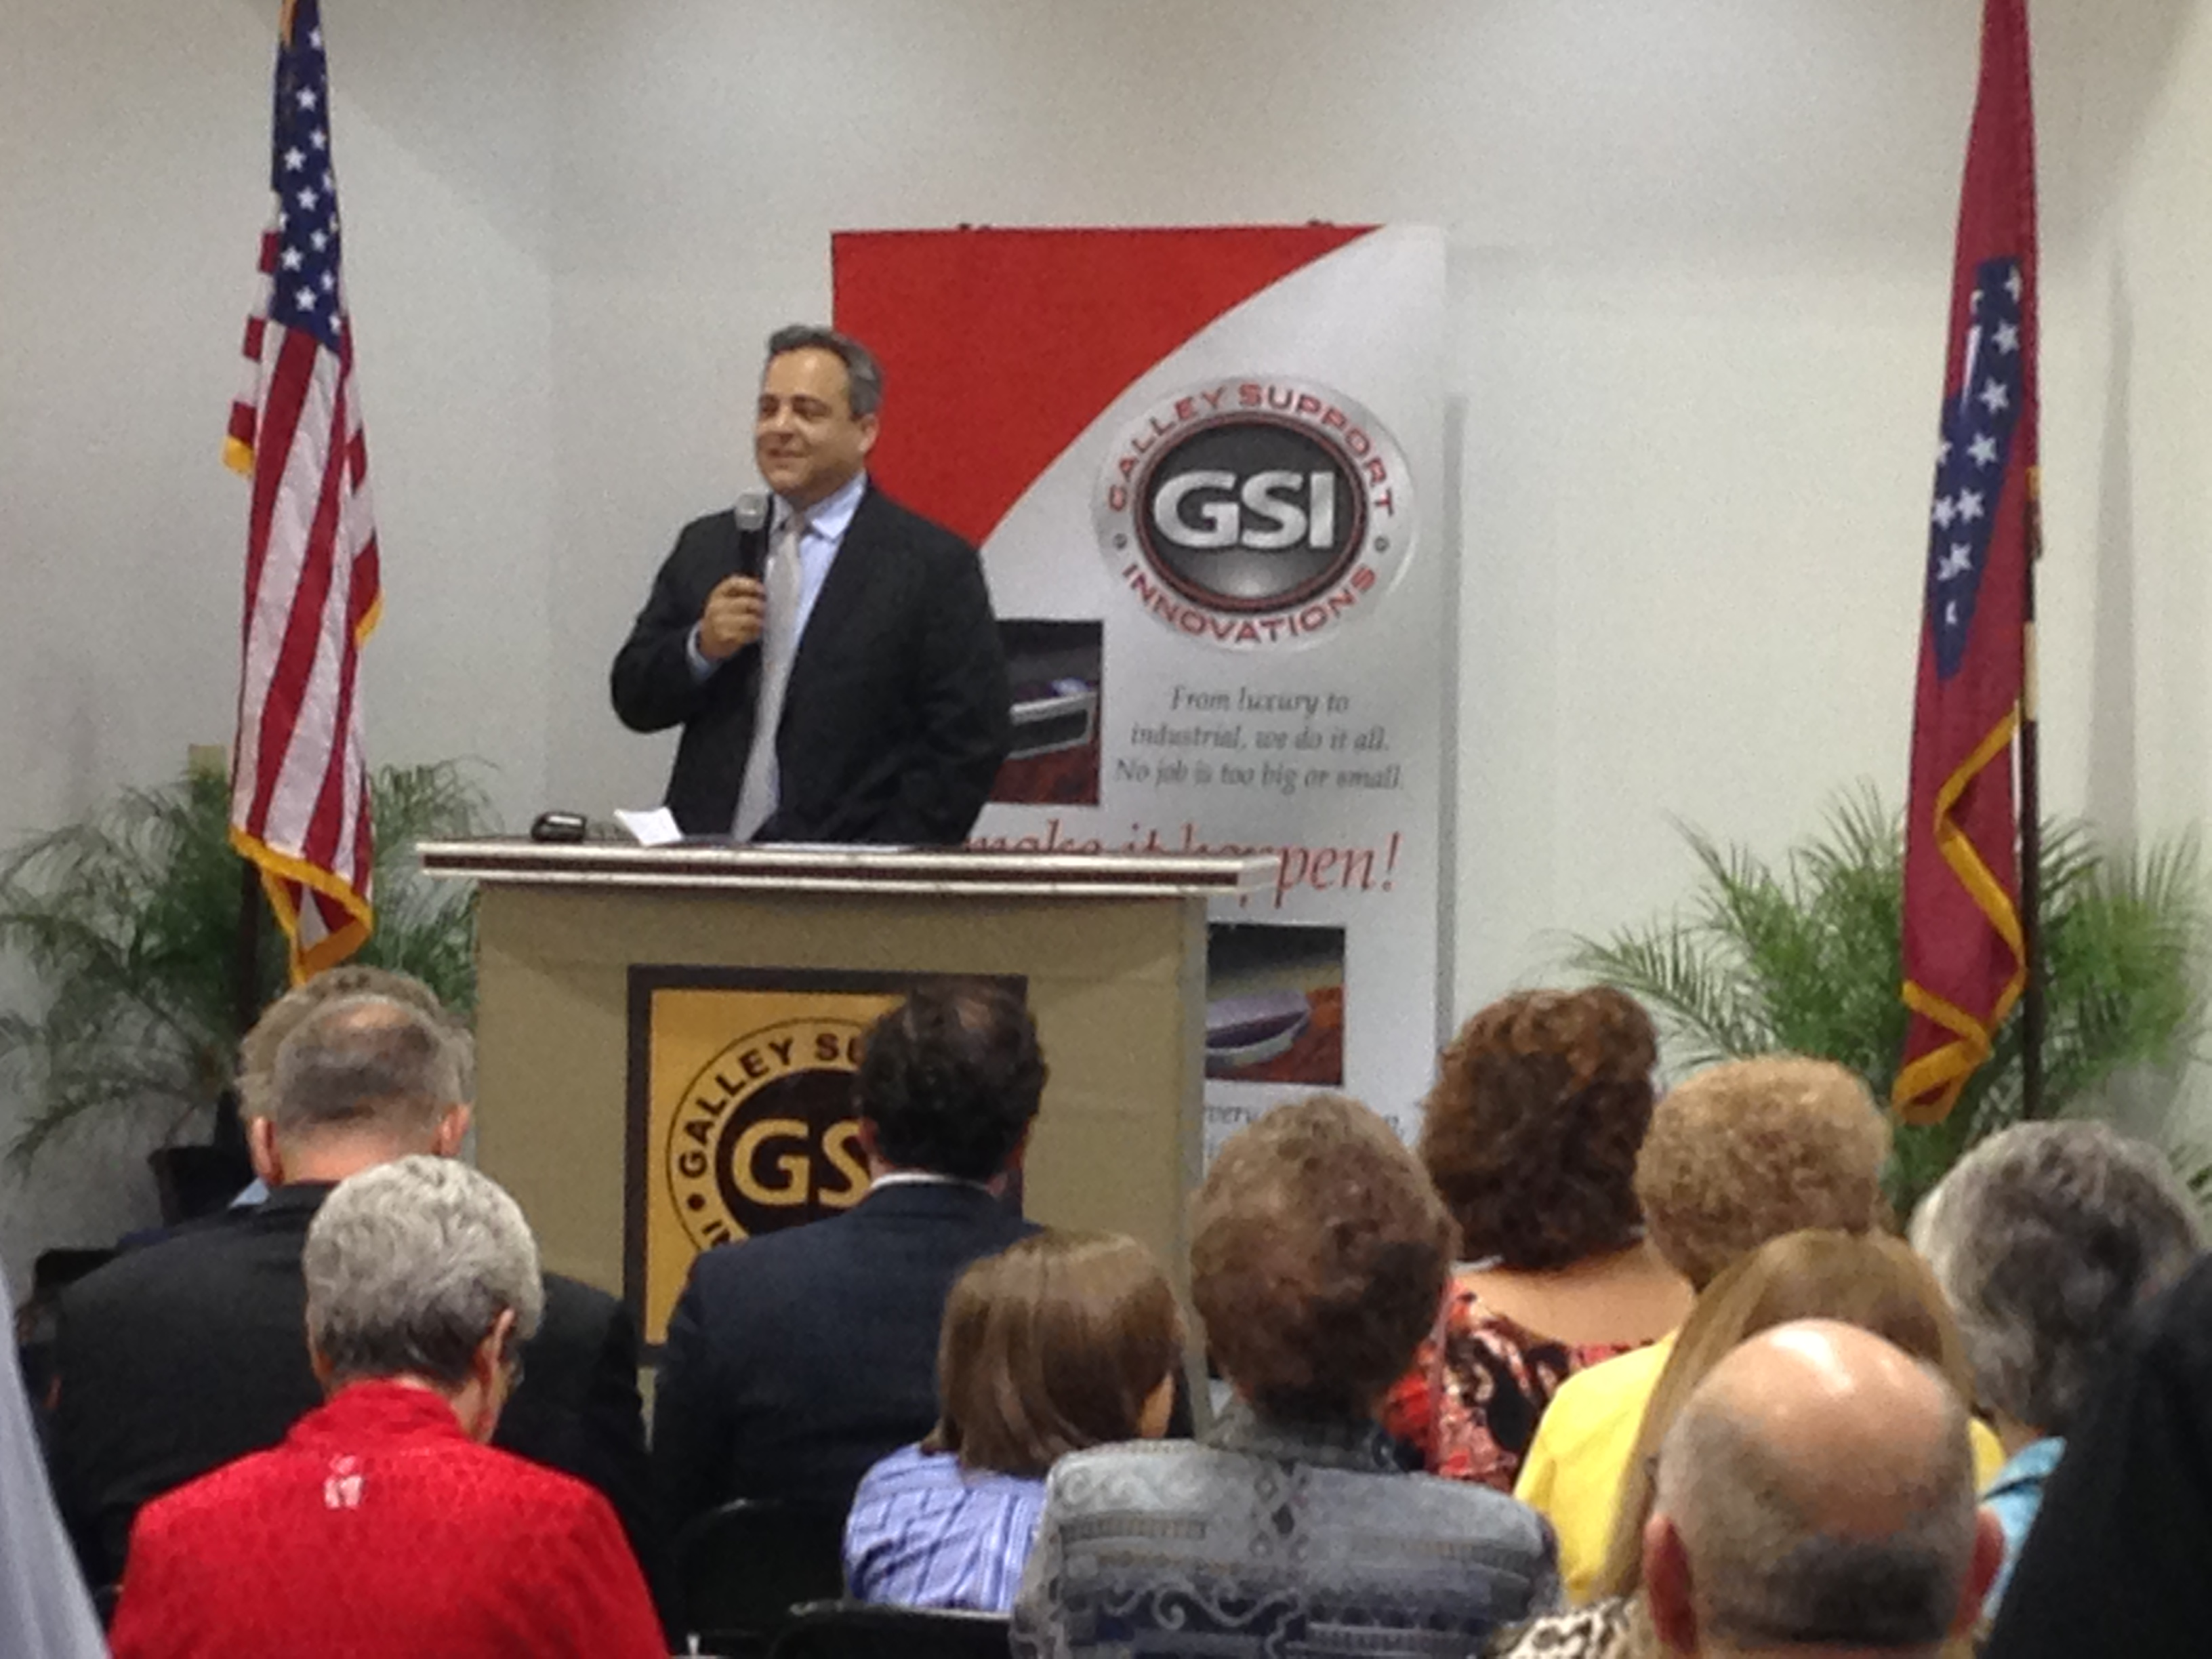 GSI co-owner Wade Radke speaks to the crowd.